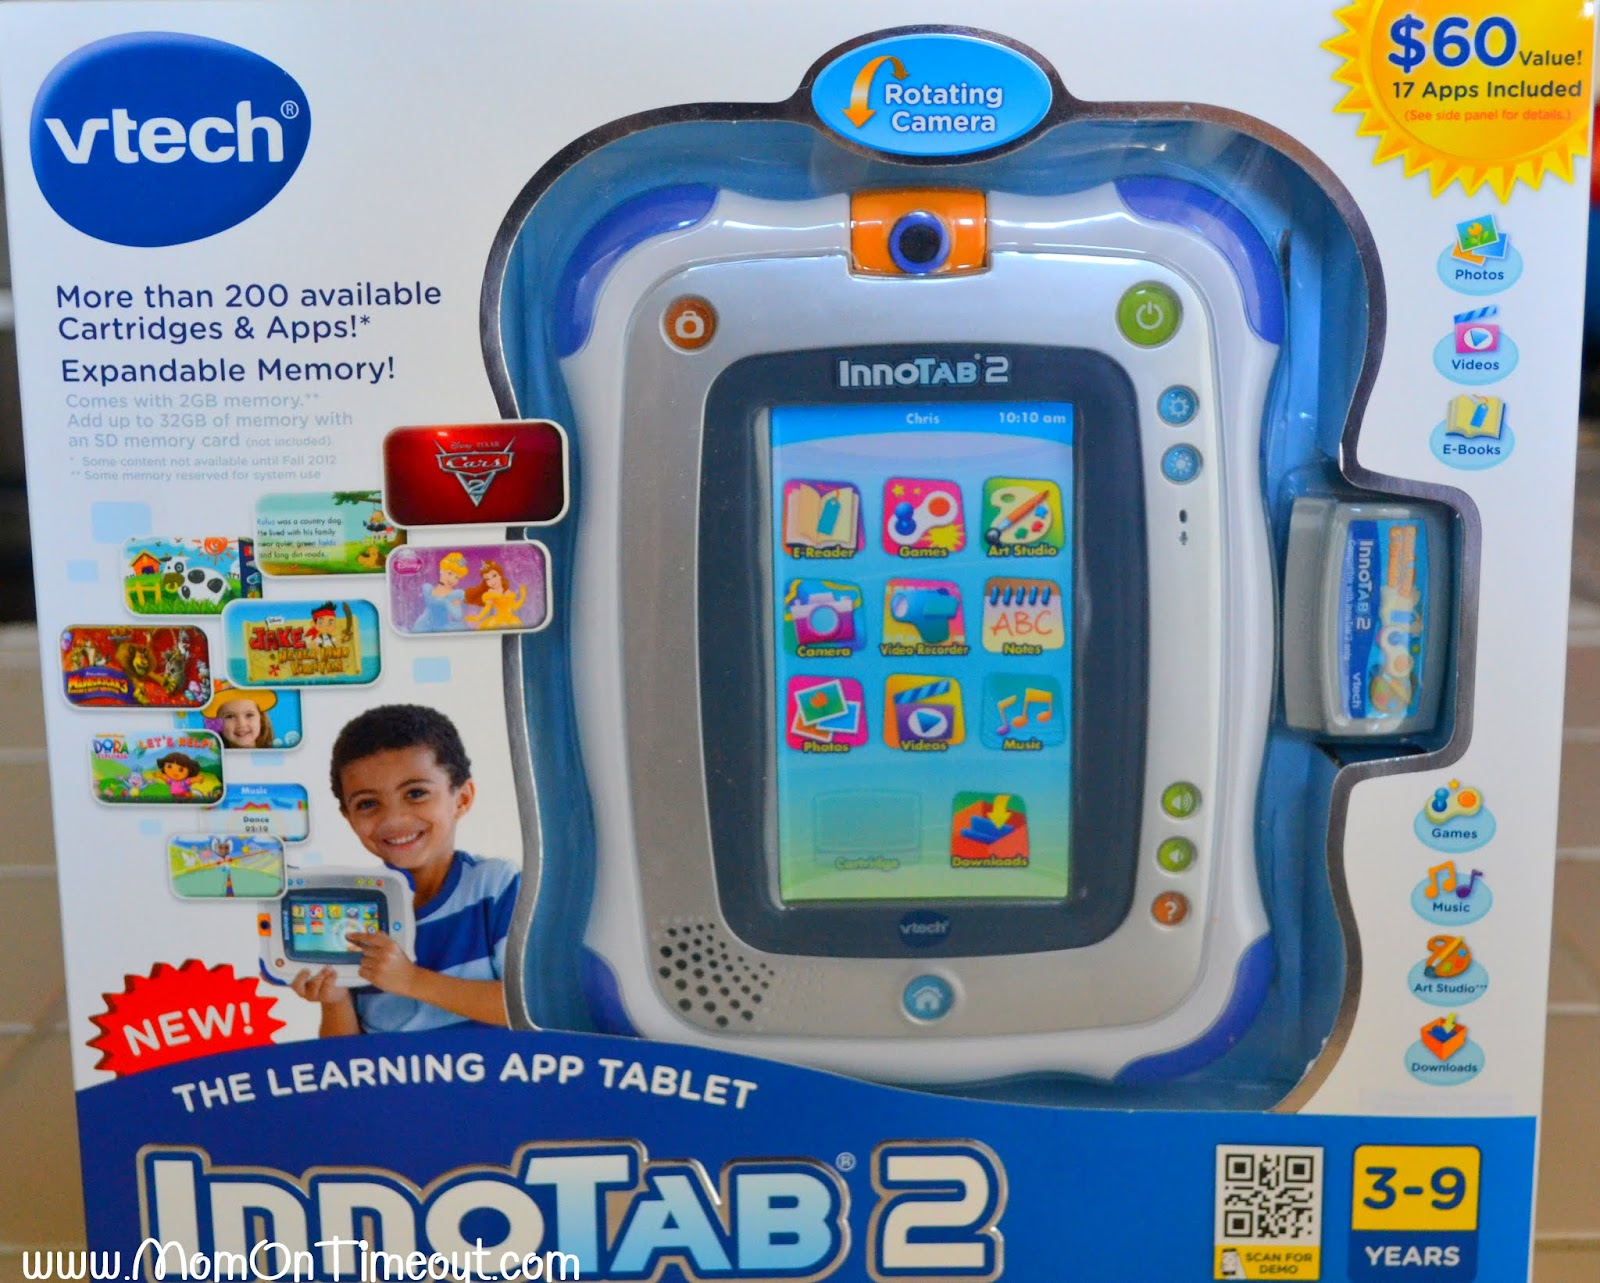 Customers can now download appropriate content, including games, e-books, videos and more from the app store. We want to assure you that we are committed to the privacy and protection of the information you entrust with VTech.